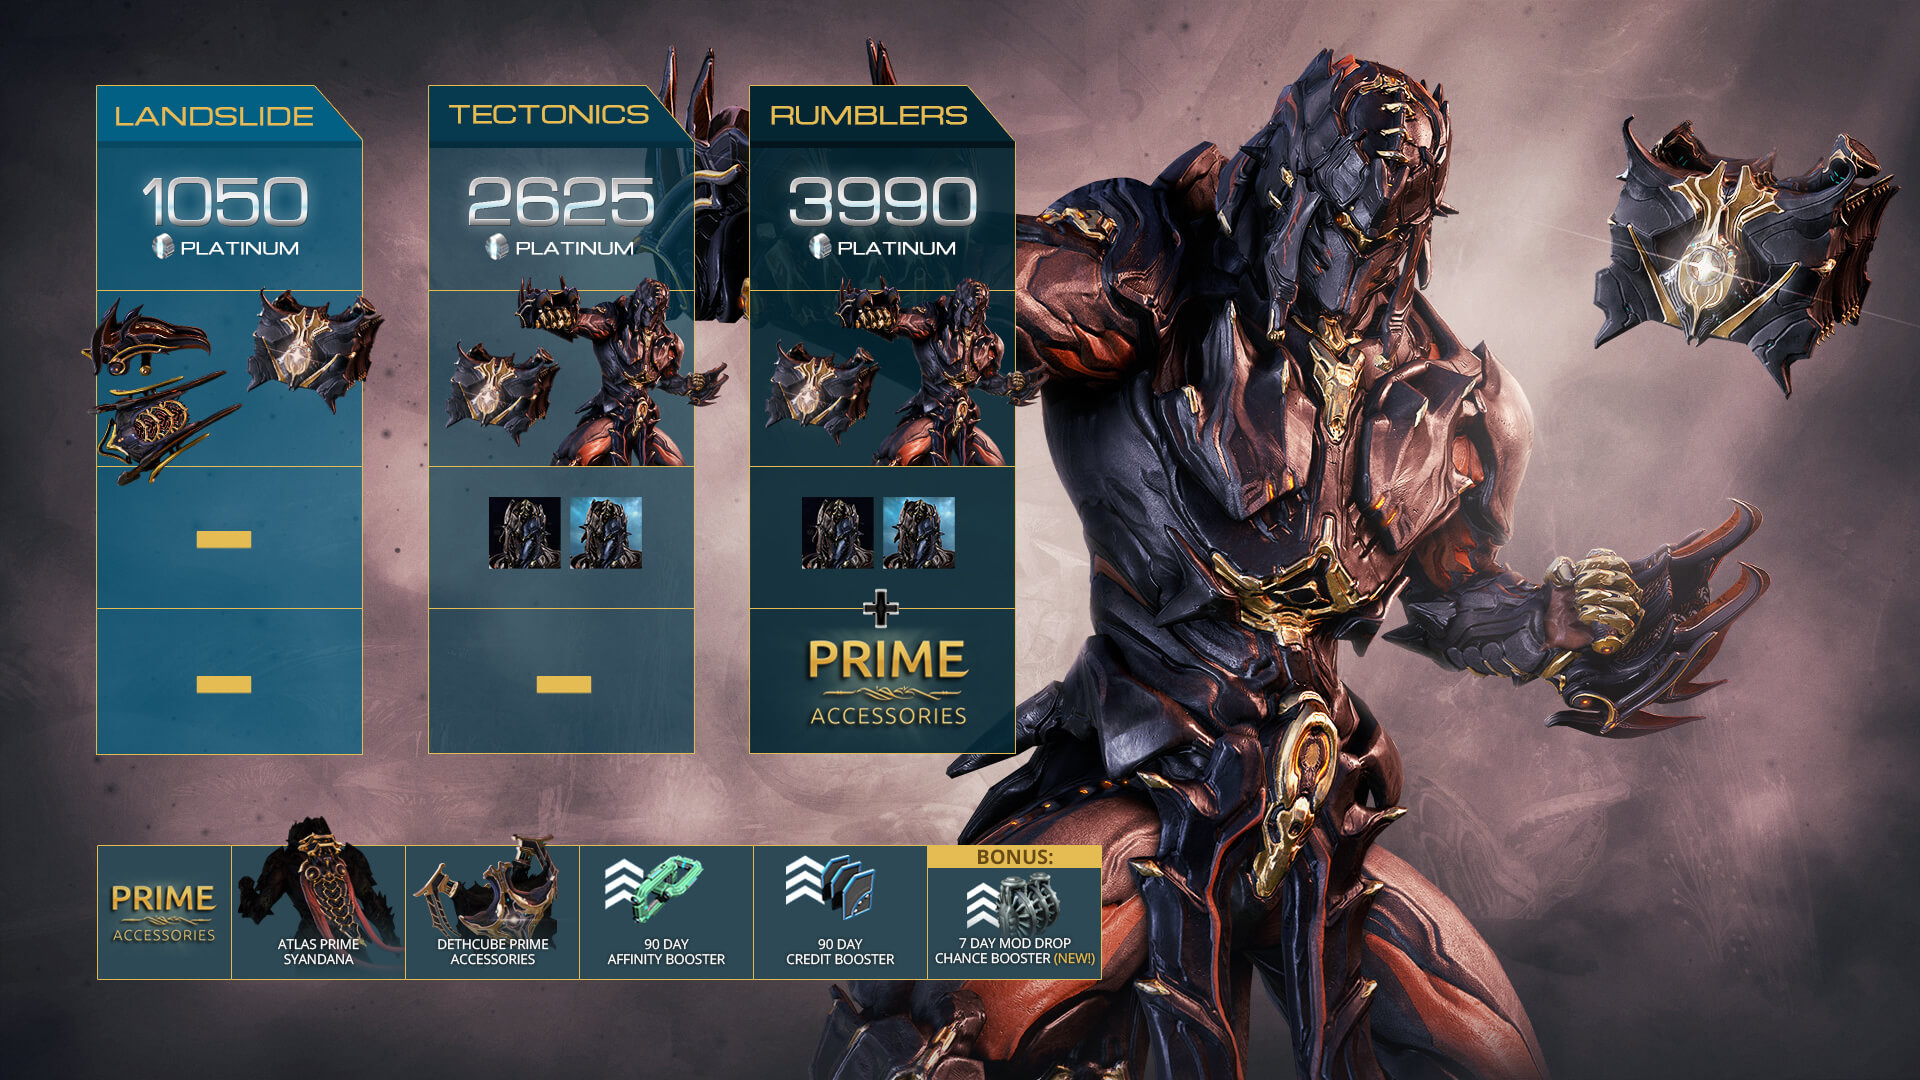 Buy Warframe Atlas Prime Access Accessories Pack Cd Key Best Deals Huntmar More than just being strong, he has a way. buy warframe atlas prime access